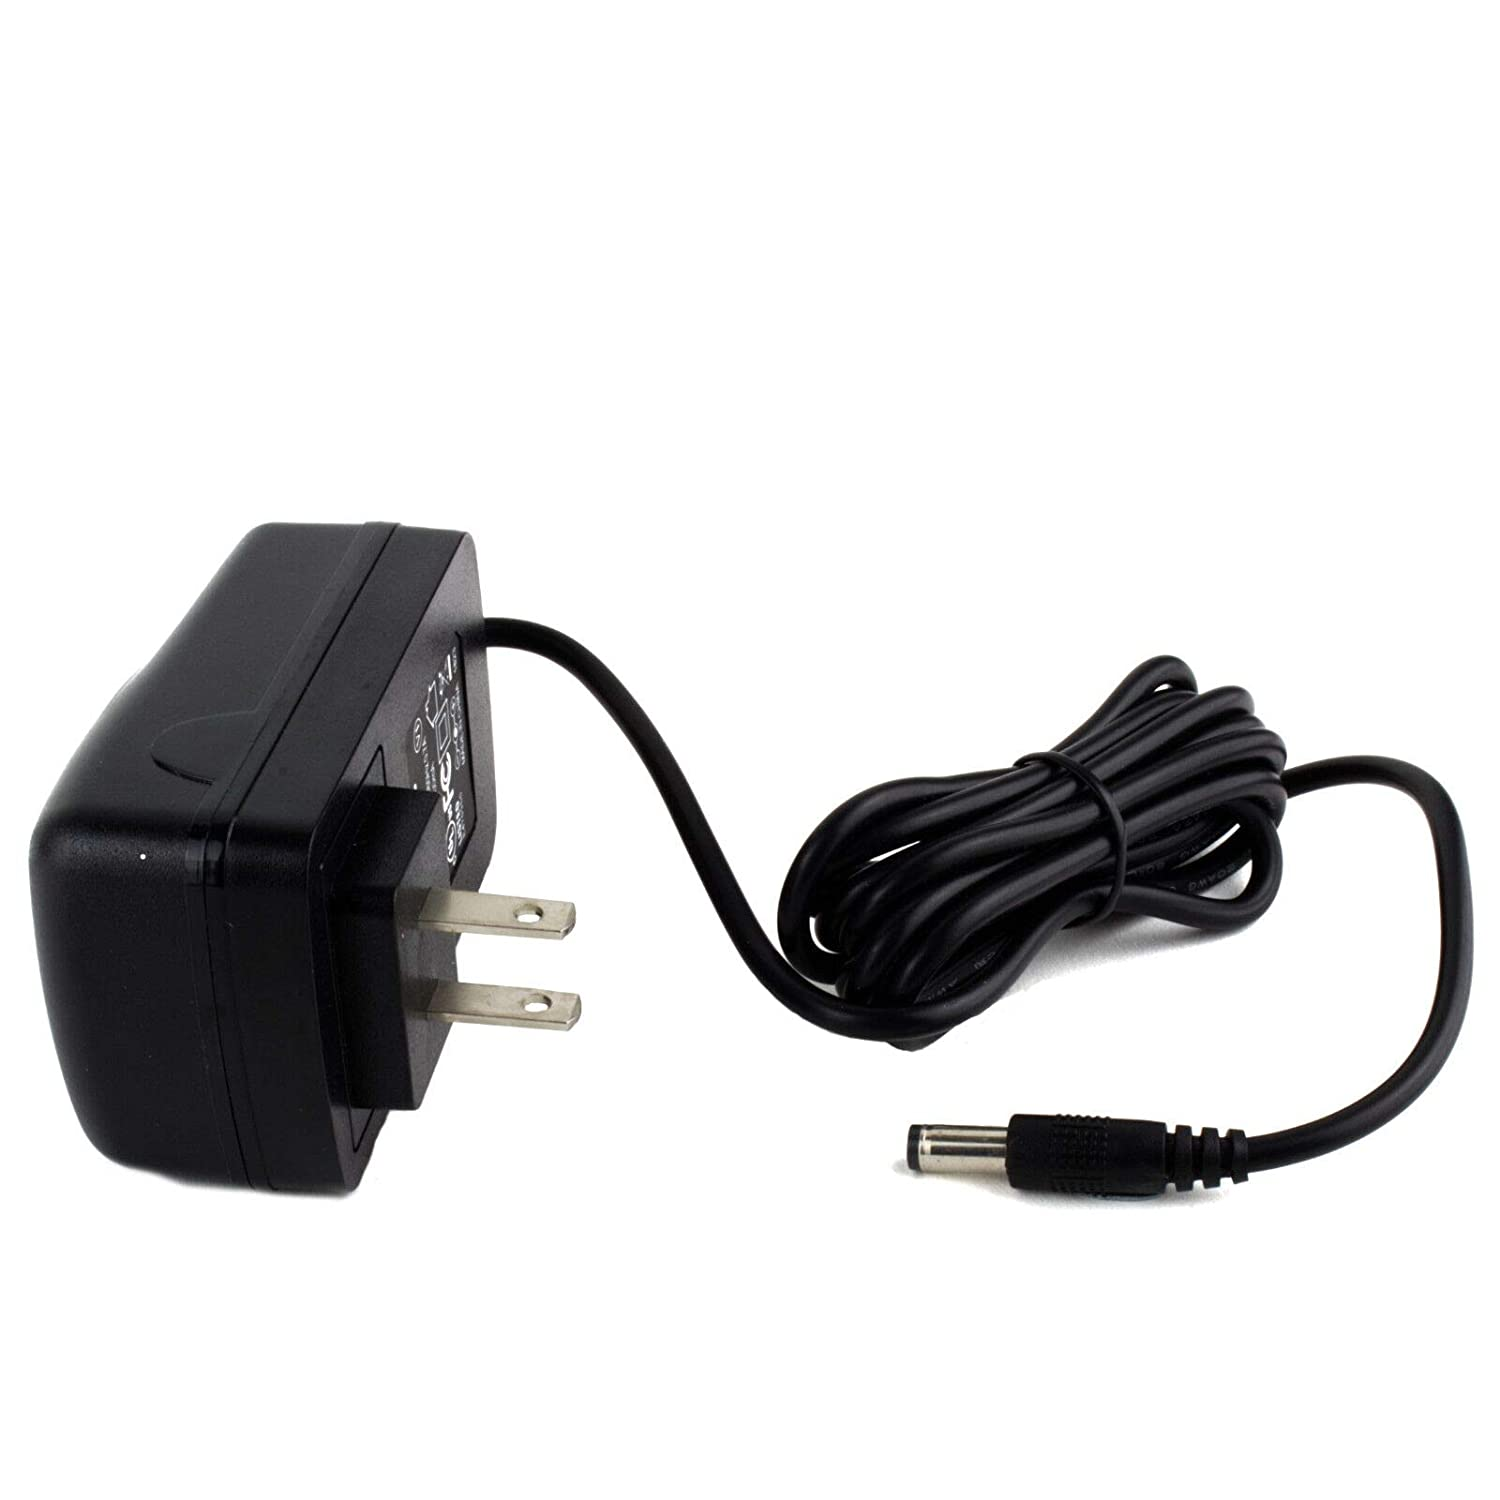 Amazon.com: MyVolts 12V Power Supply Adaptor Compatible with Toshiba